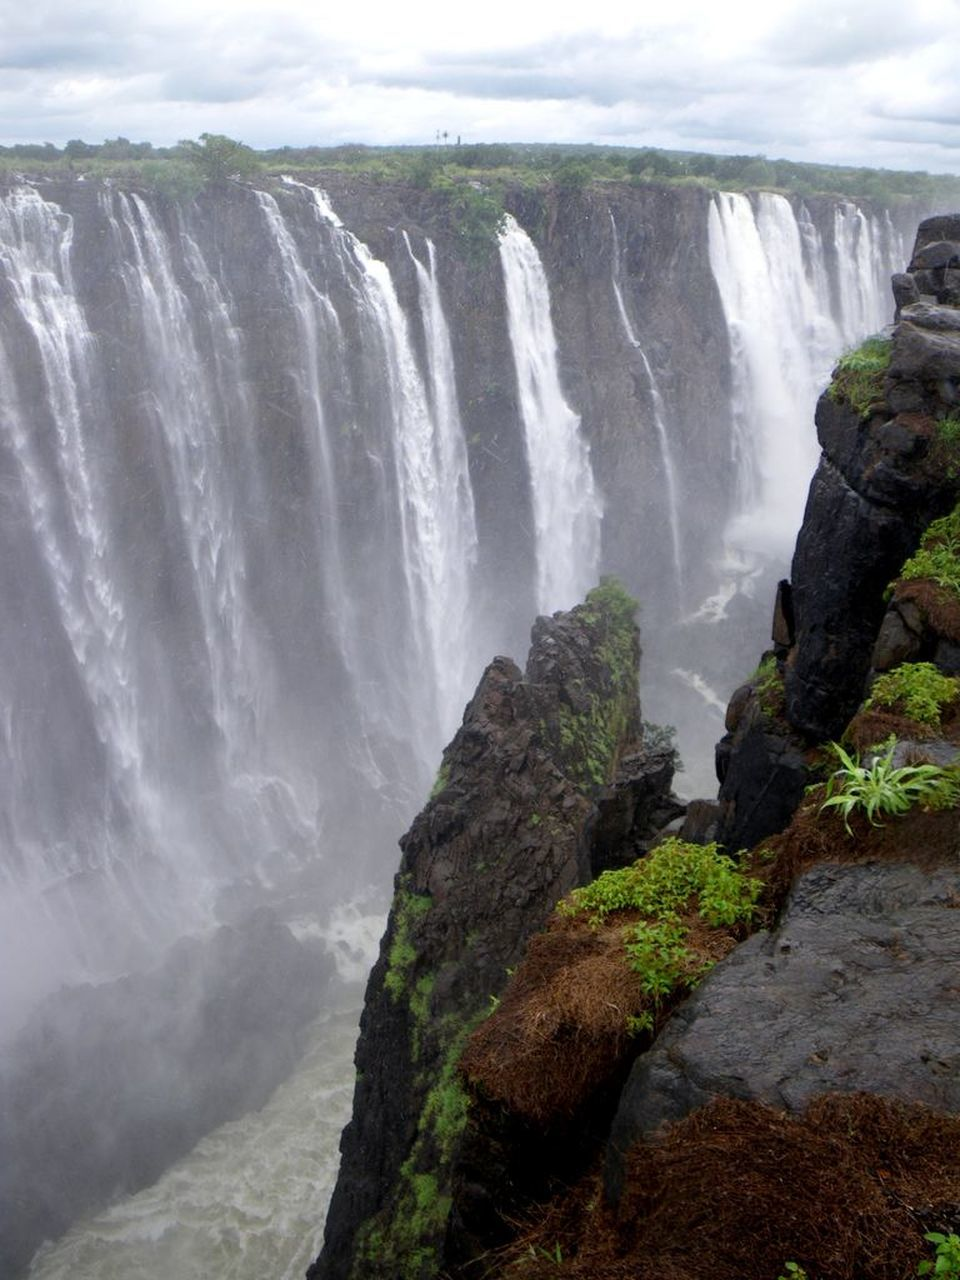 Scenic Shot Of Waterfall Against Clouds